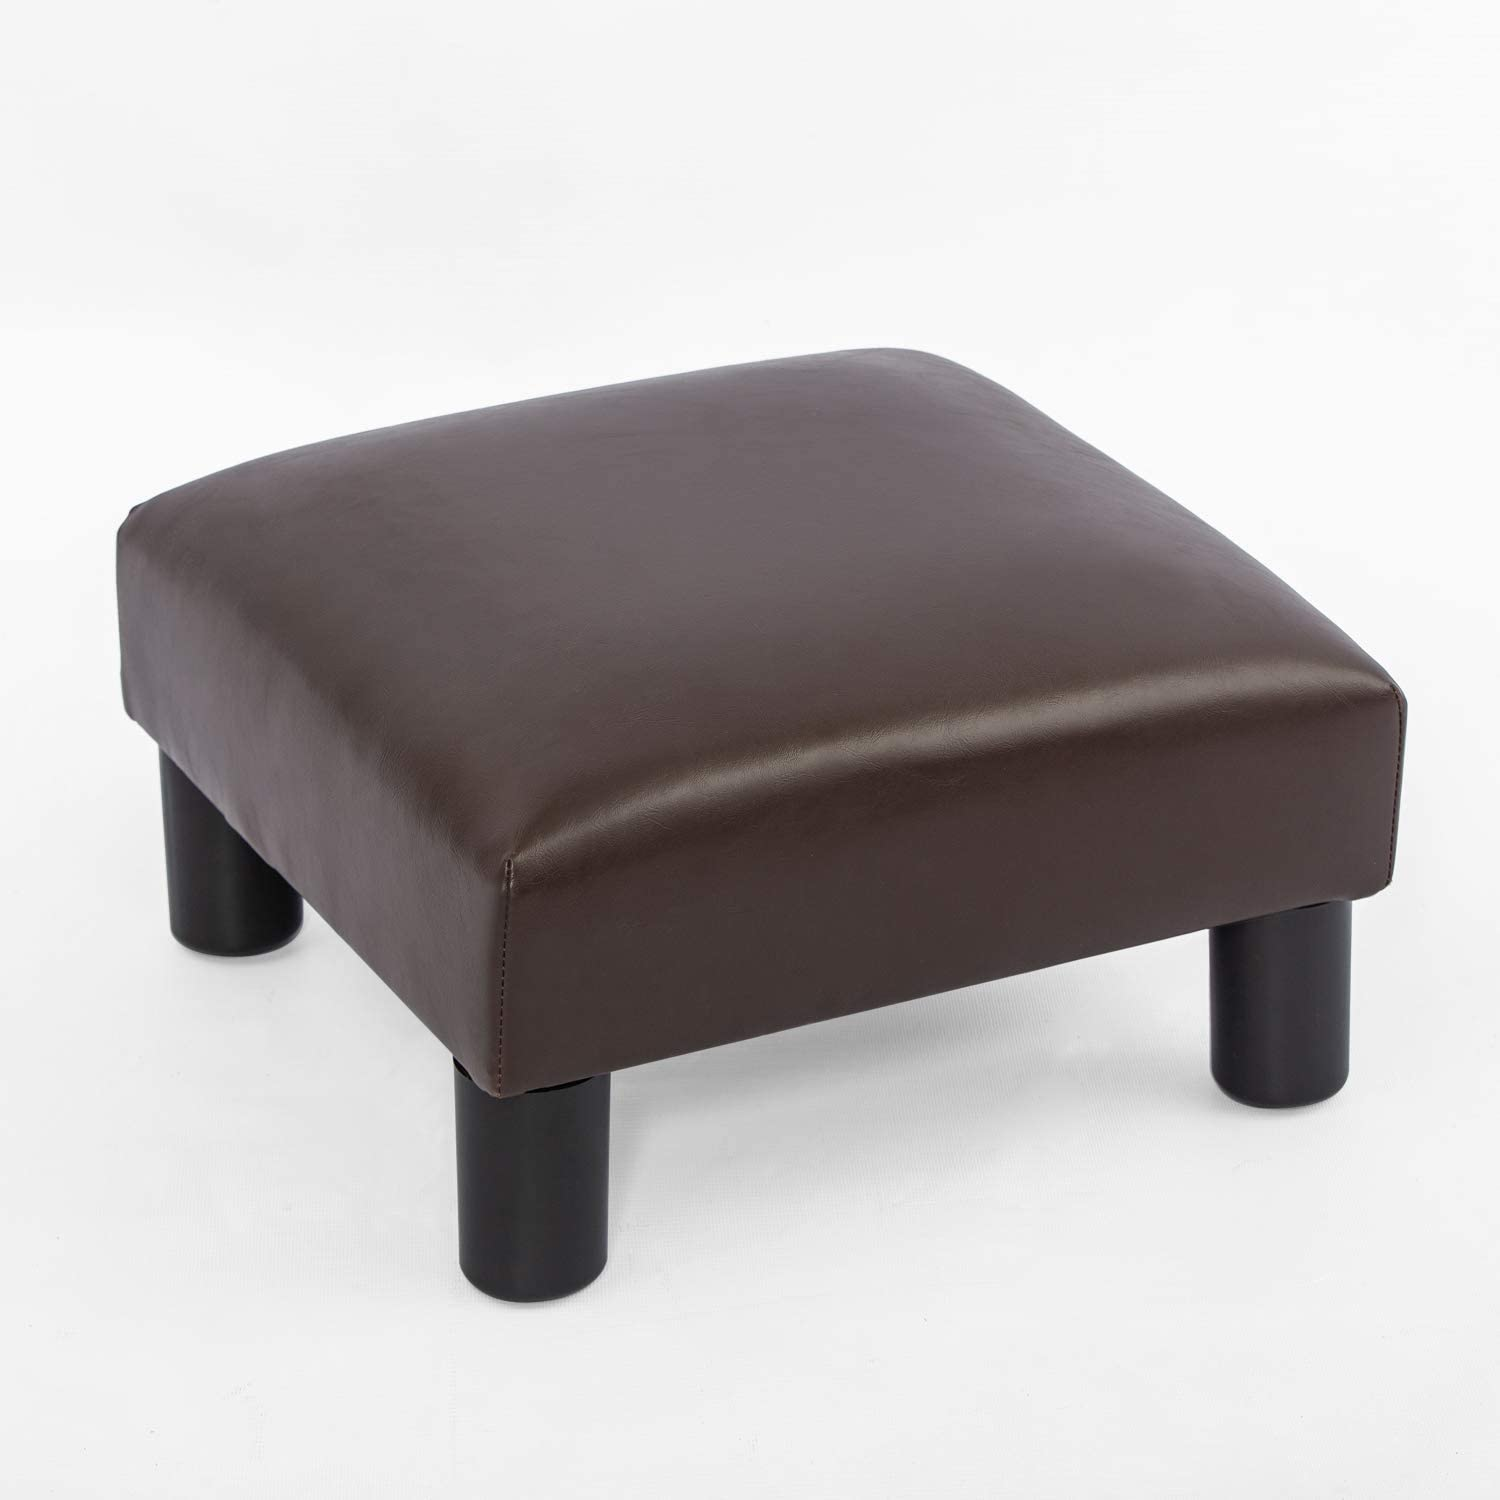 Joveco Ottoman Footrest Stool Small PU Leather Square Footstool (Brown)